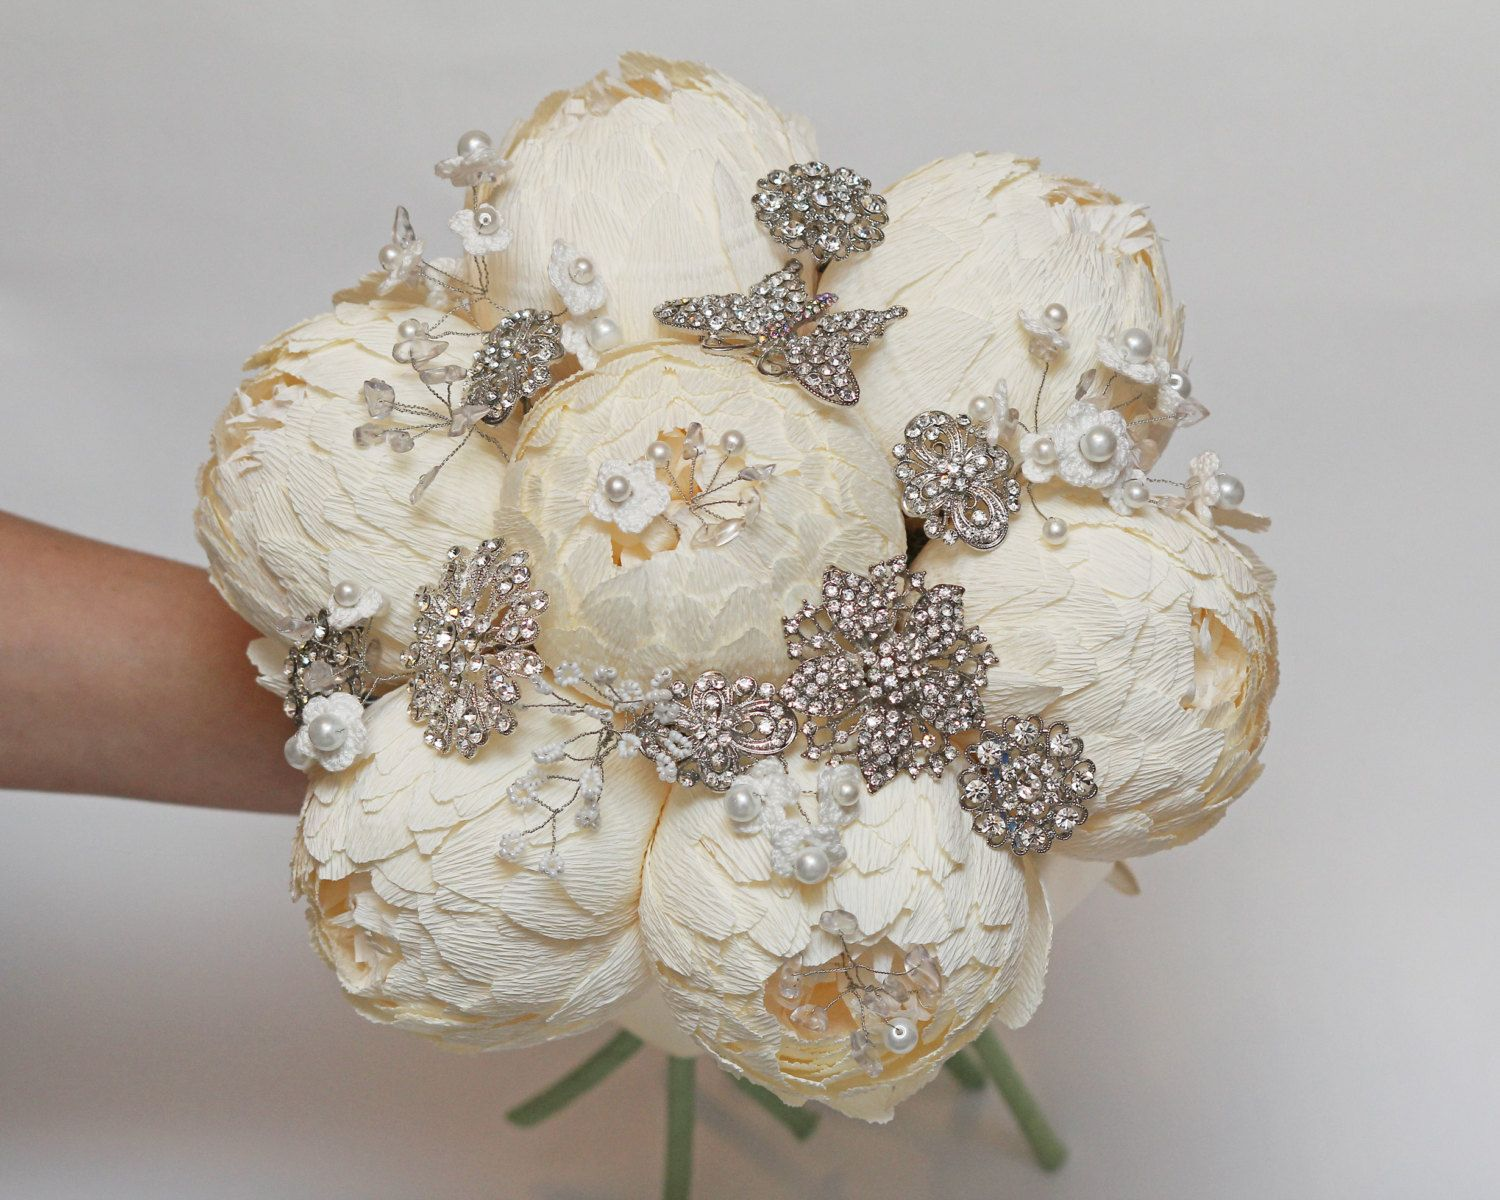 Fall Bridal Bouquets With Brooches Request A Custom Order And Have Something Made Just For